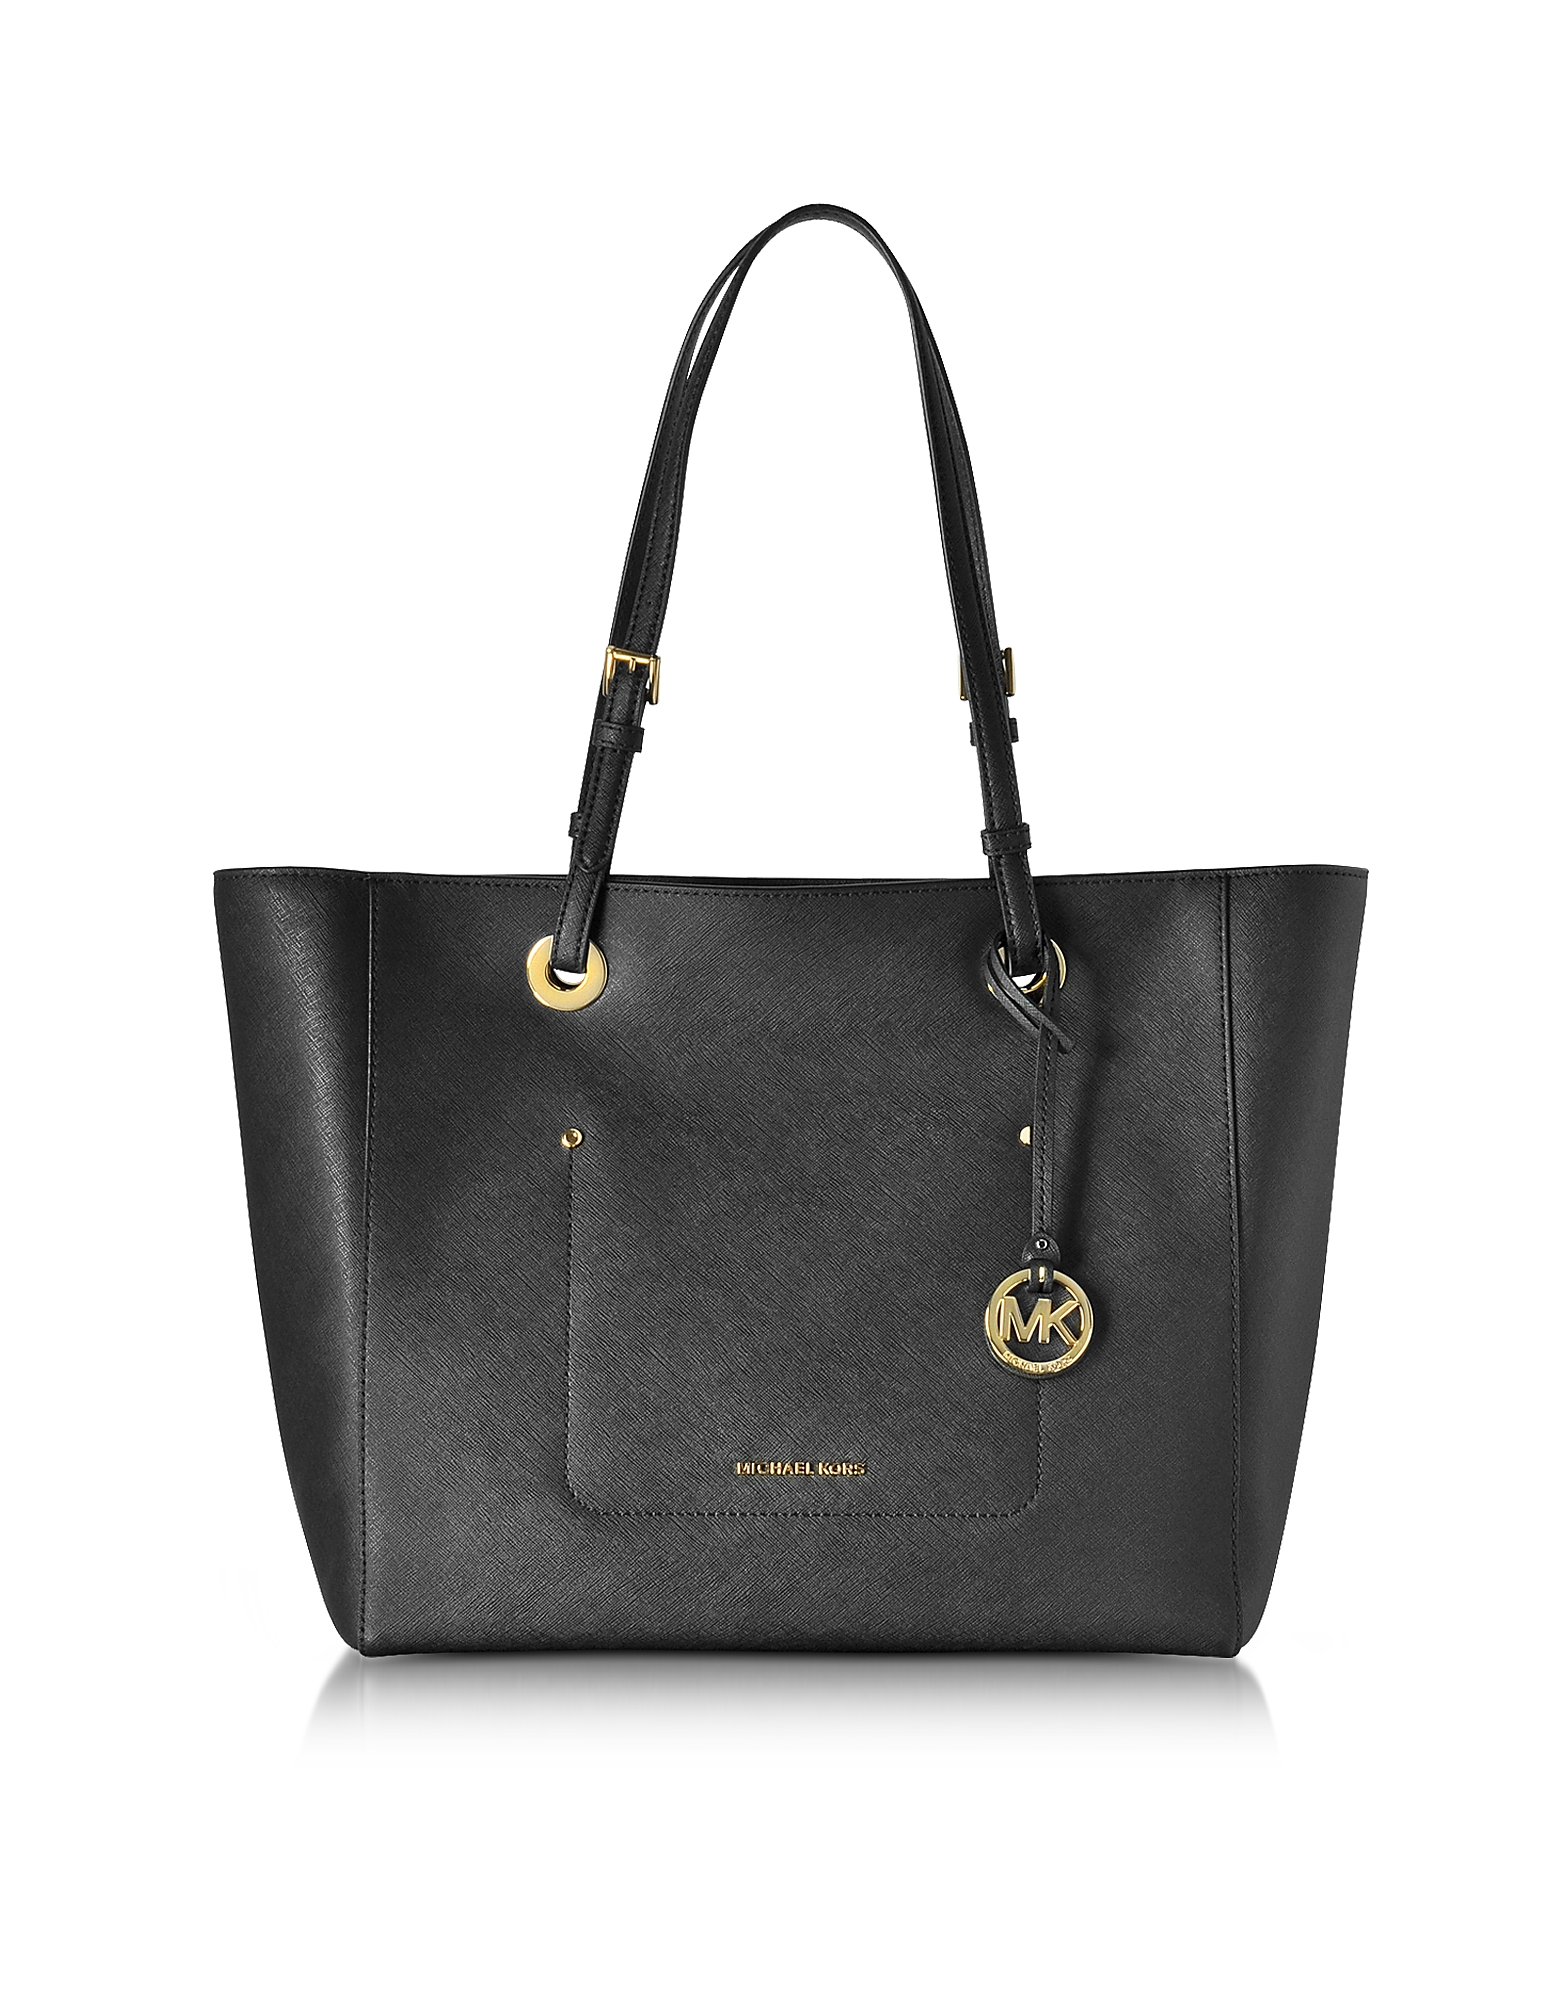 Michael Kors Handbags, Walsh Large Black Saffiano Leather EW Top-Zip Tote